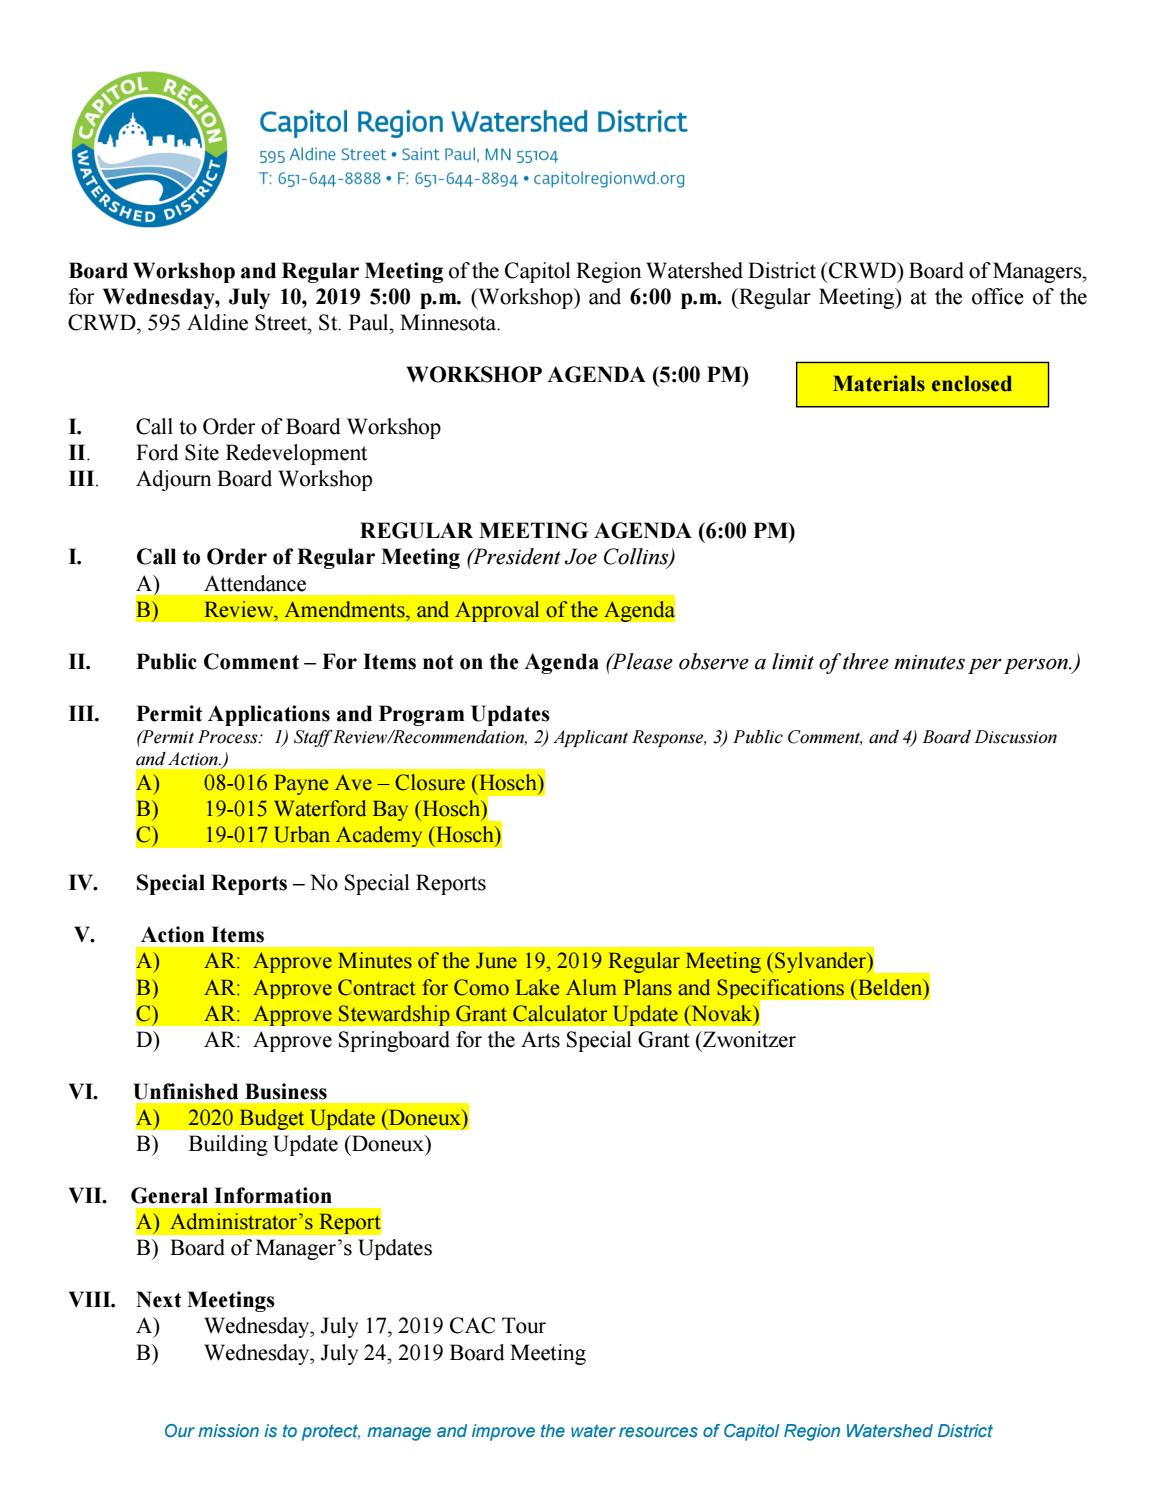 July 10, 2019 Board Packet by Capitol Region Watershed District - issuu